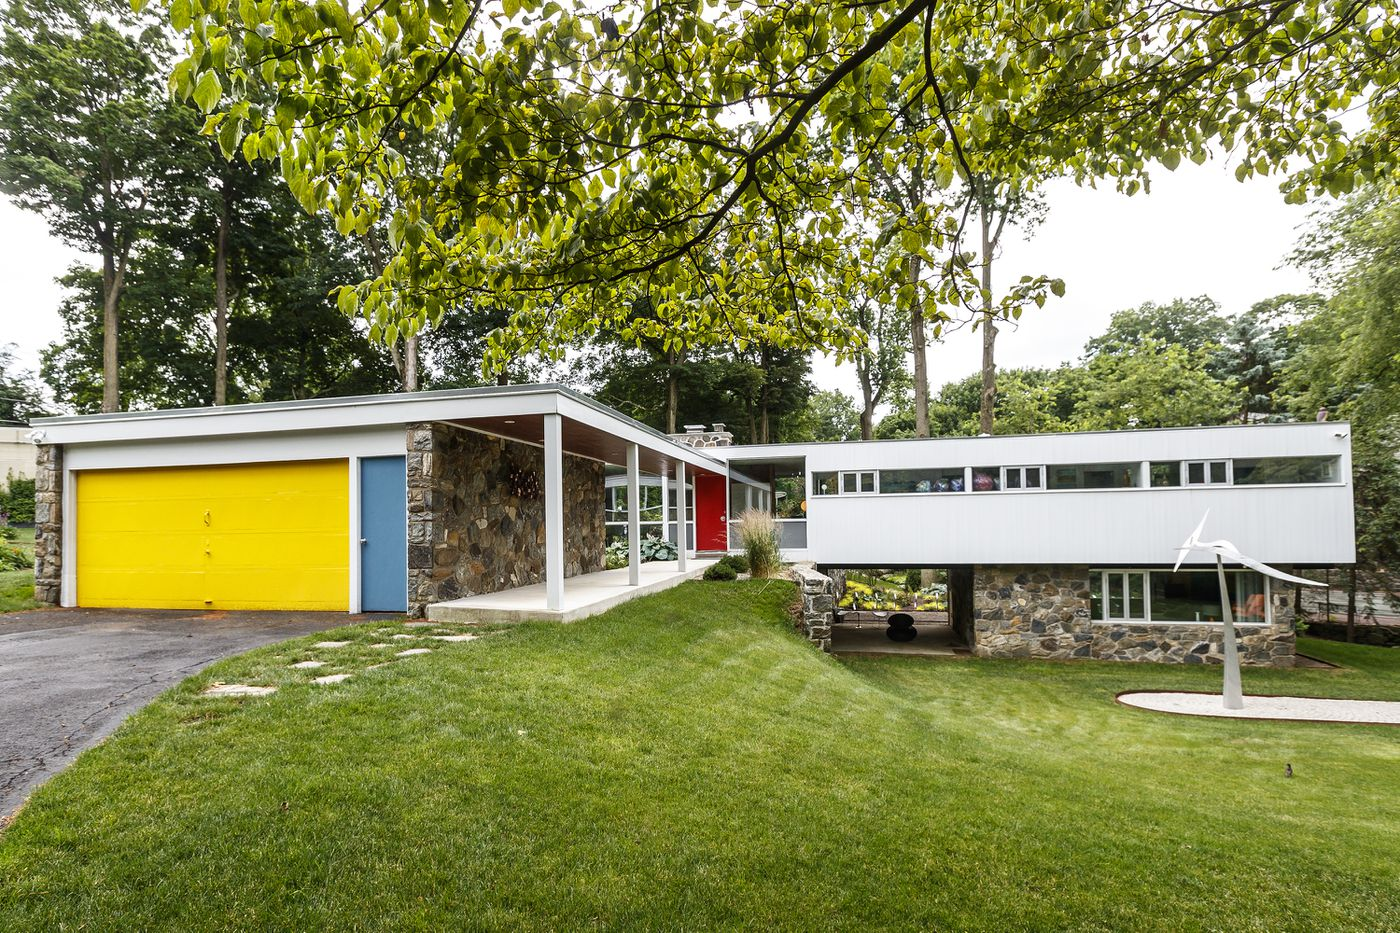 Landscaping Creates A Bucolic Setting For A Mid Century Modern